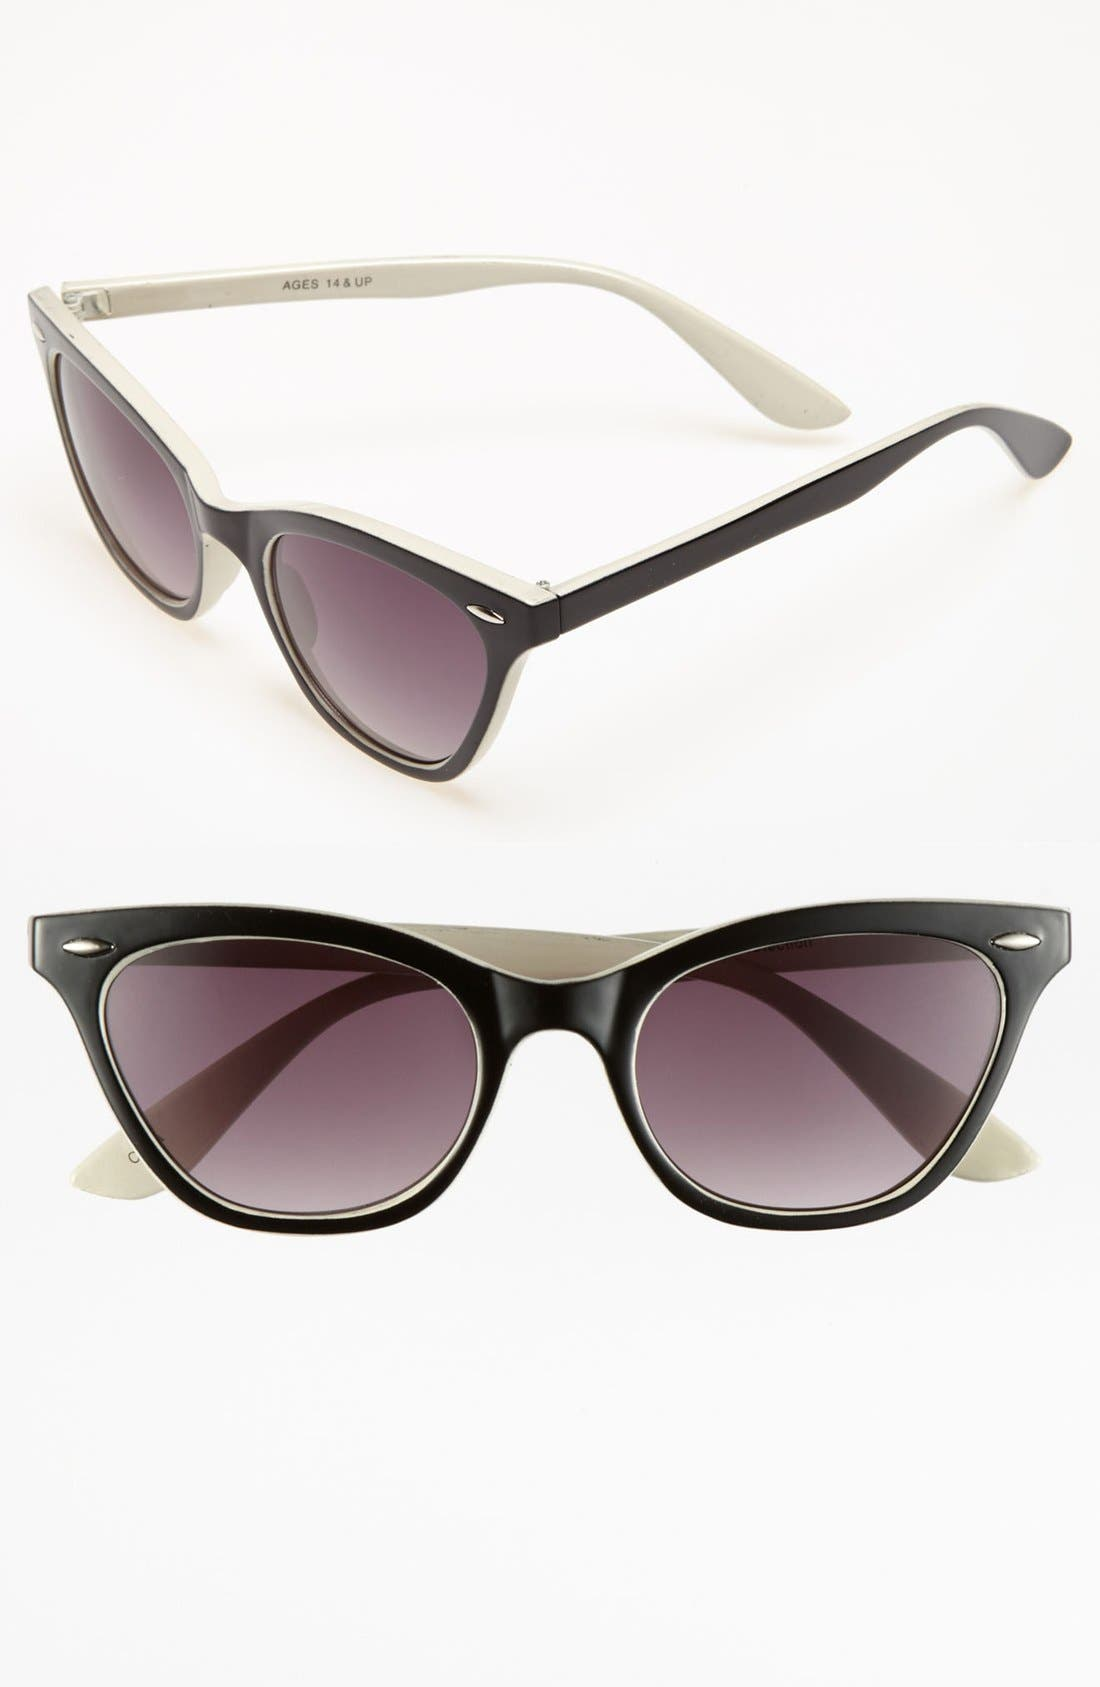 Alternate Image 1 Selected - FE NY 'Wink' Sunglasses